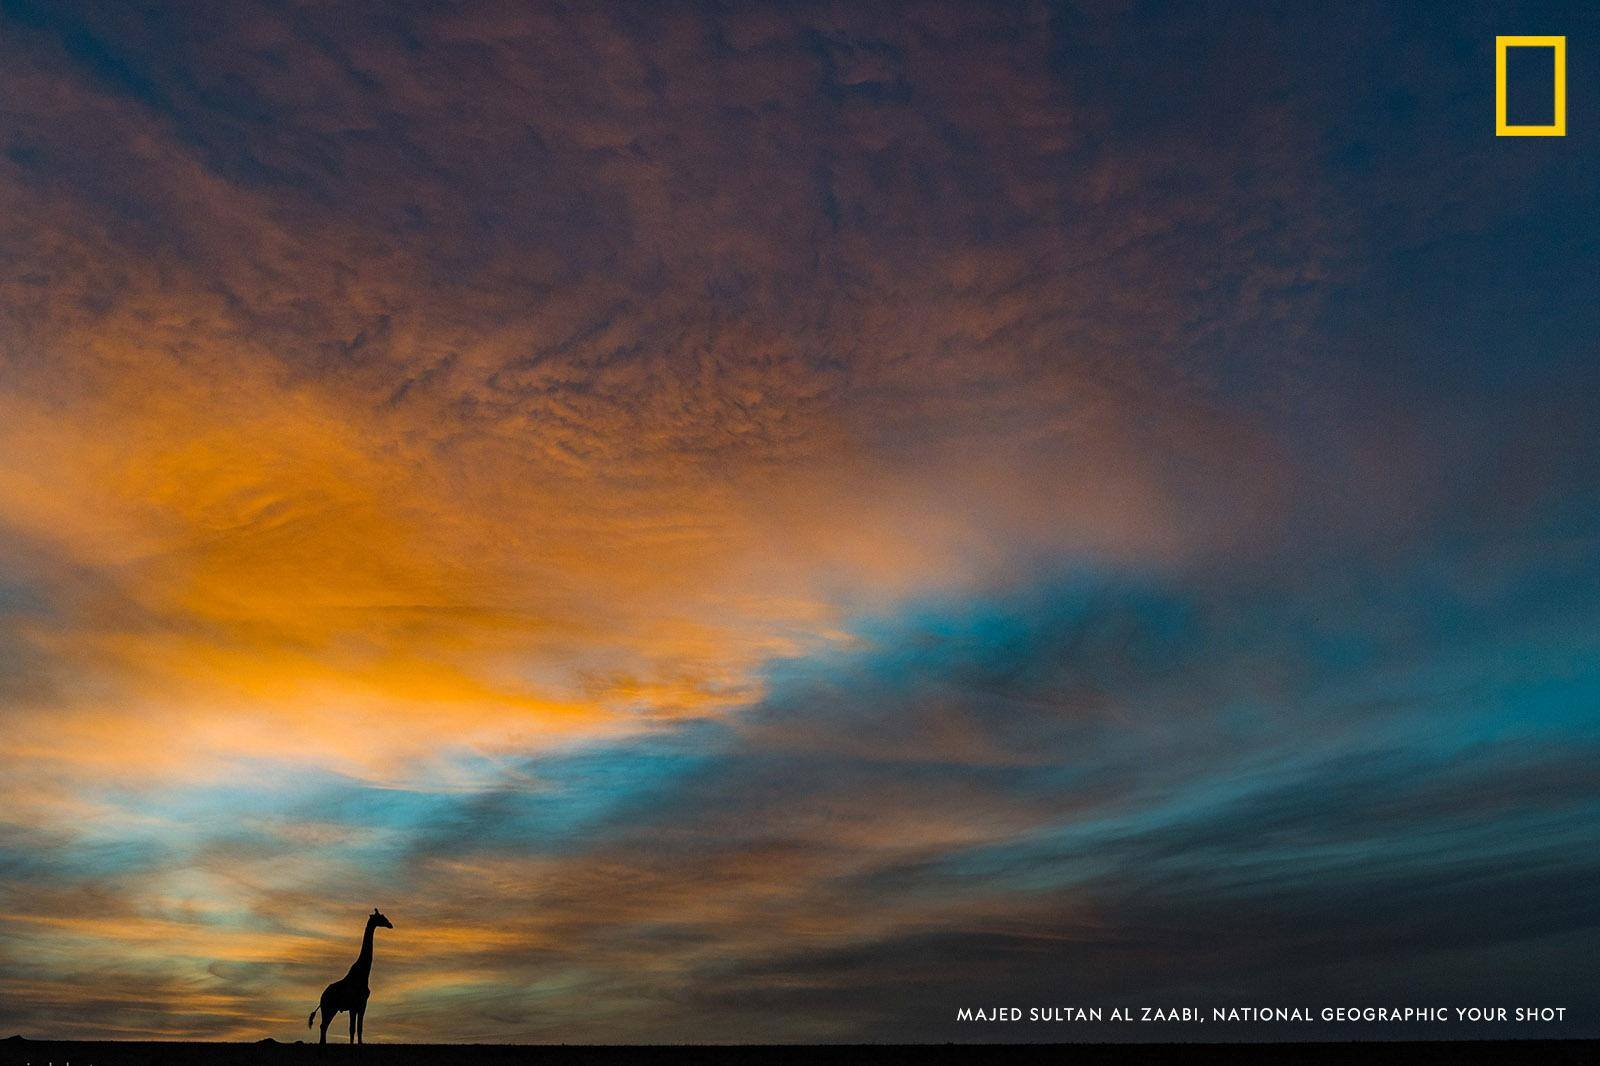 A giraffe is silhouetted against a gorgeous sunrise in Masai Mara National Reserve, Kenya in this photo by Your Shot photographer Majed Al Zaabi. https://on.natgeo.com/2UjFlLr